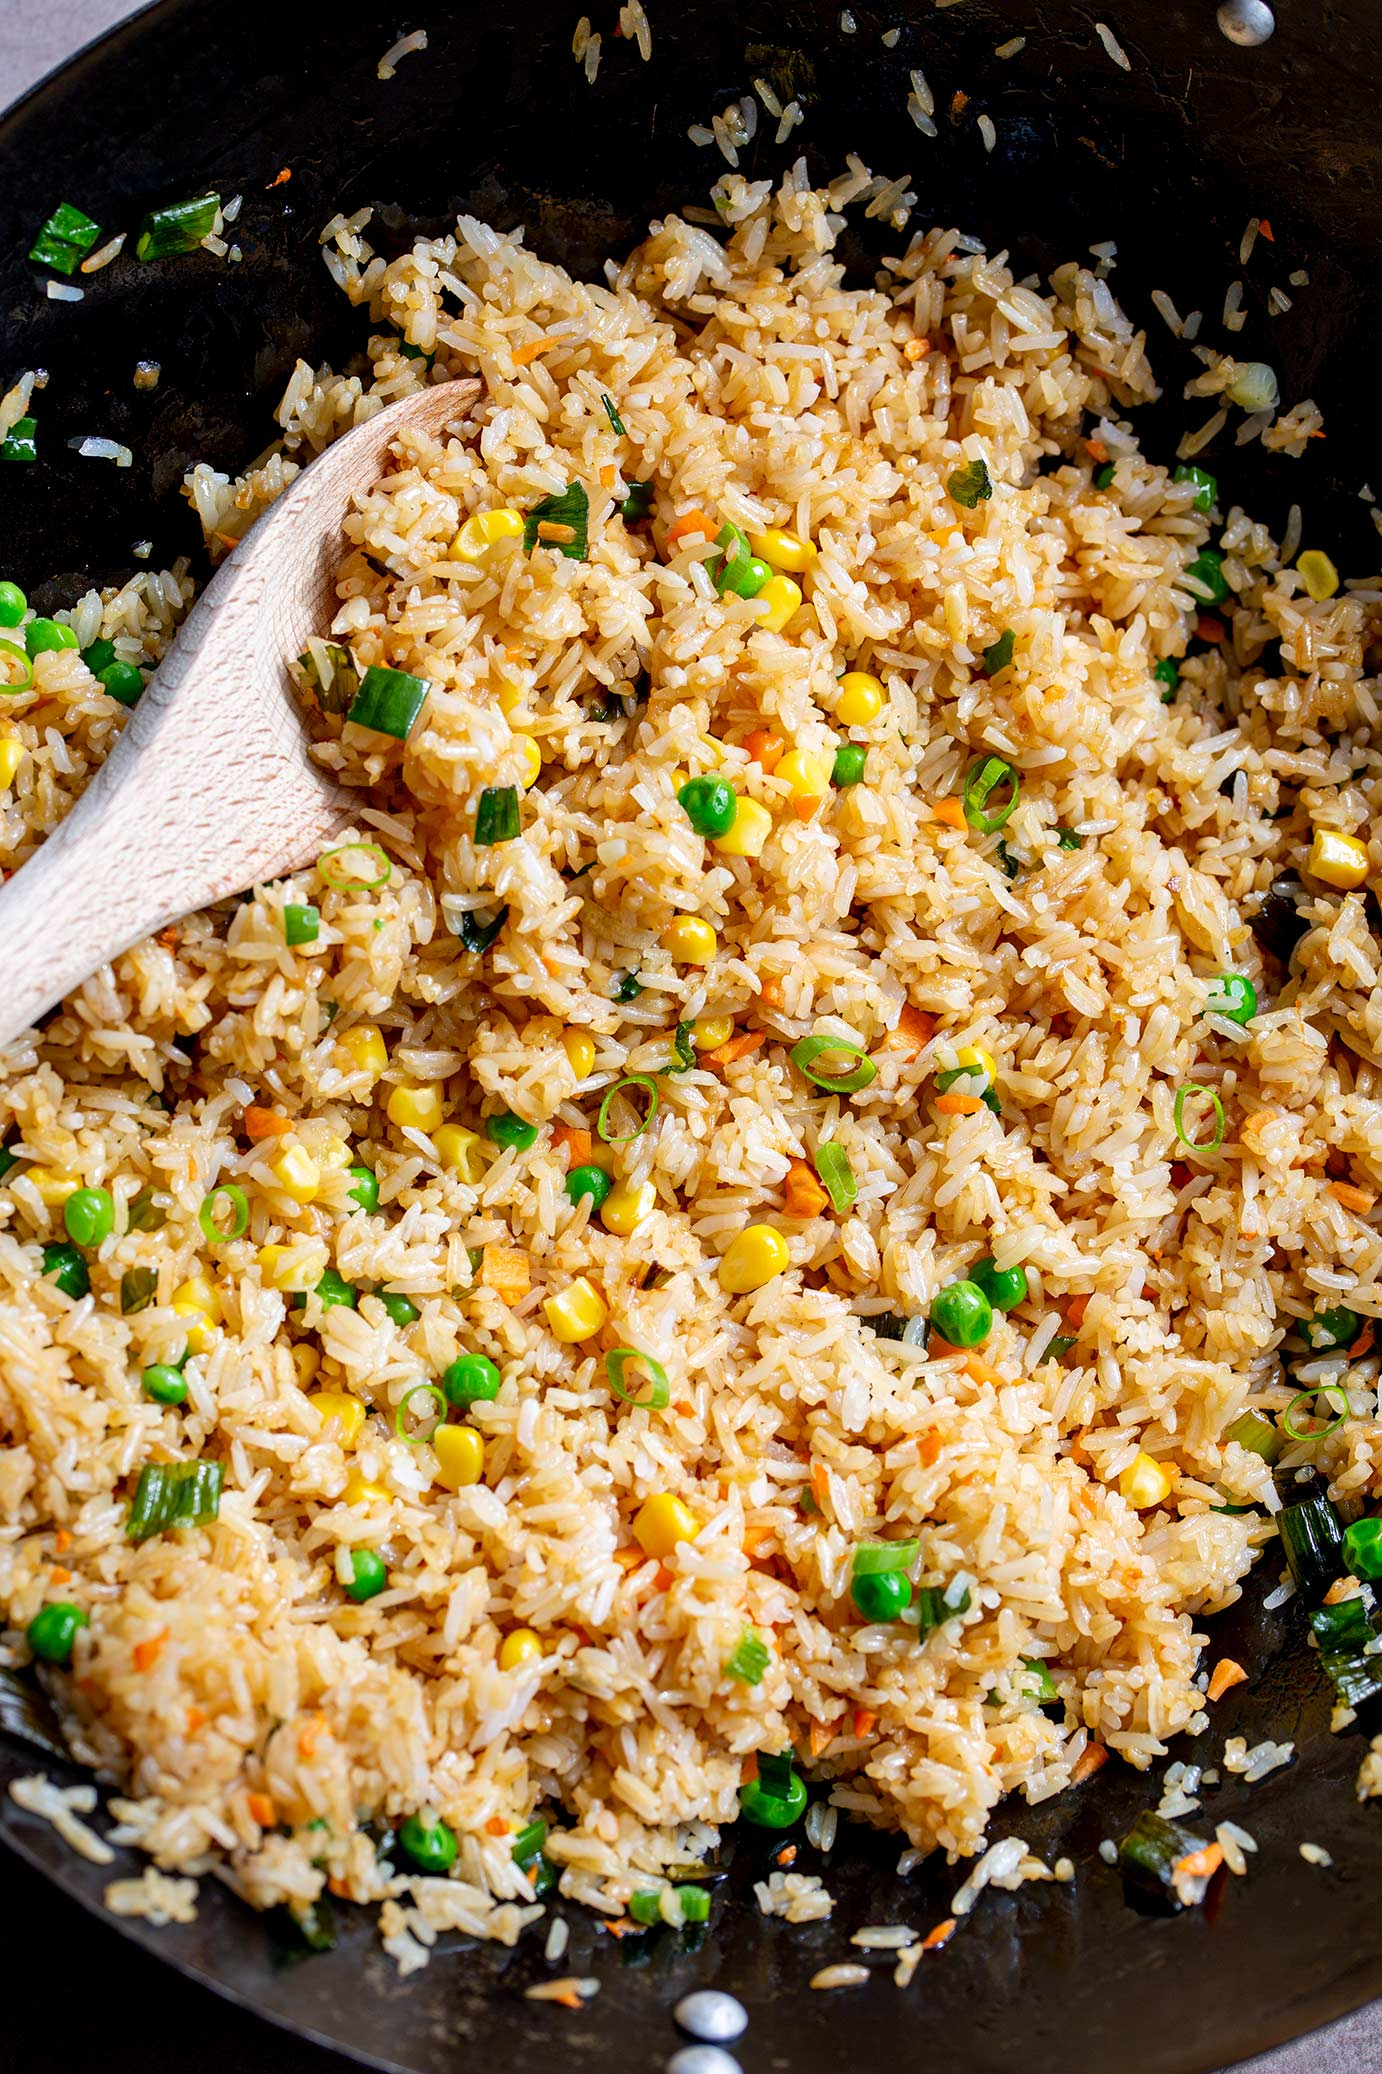 a wooden spoon in a wok full of fried rice